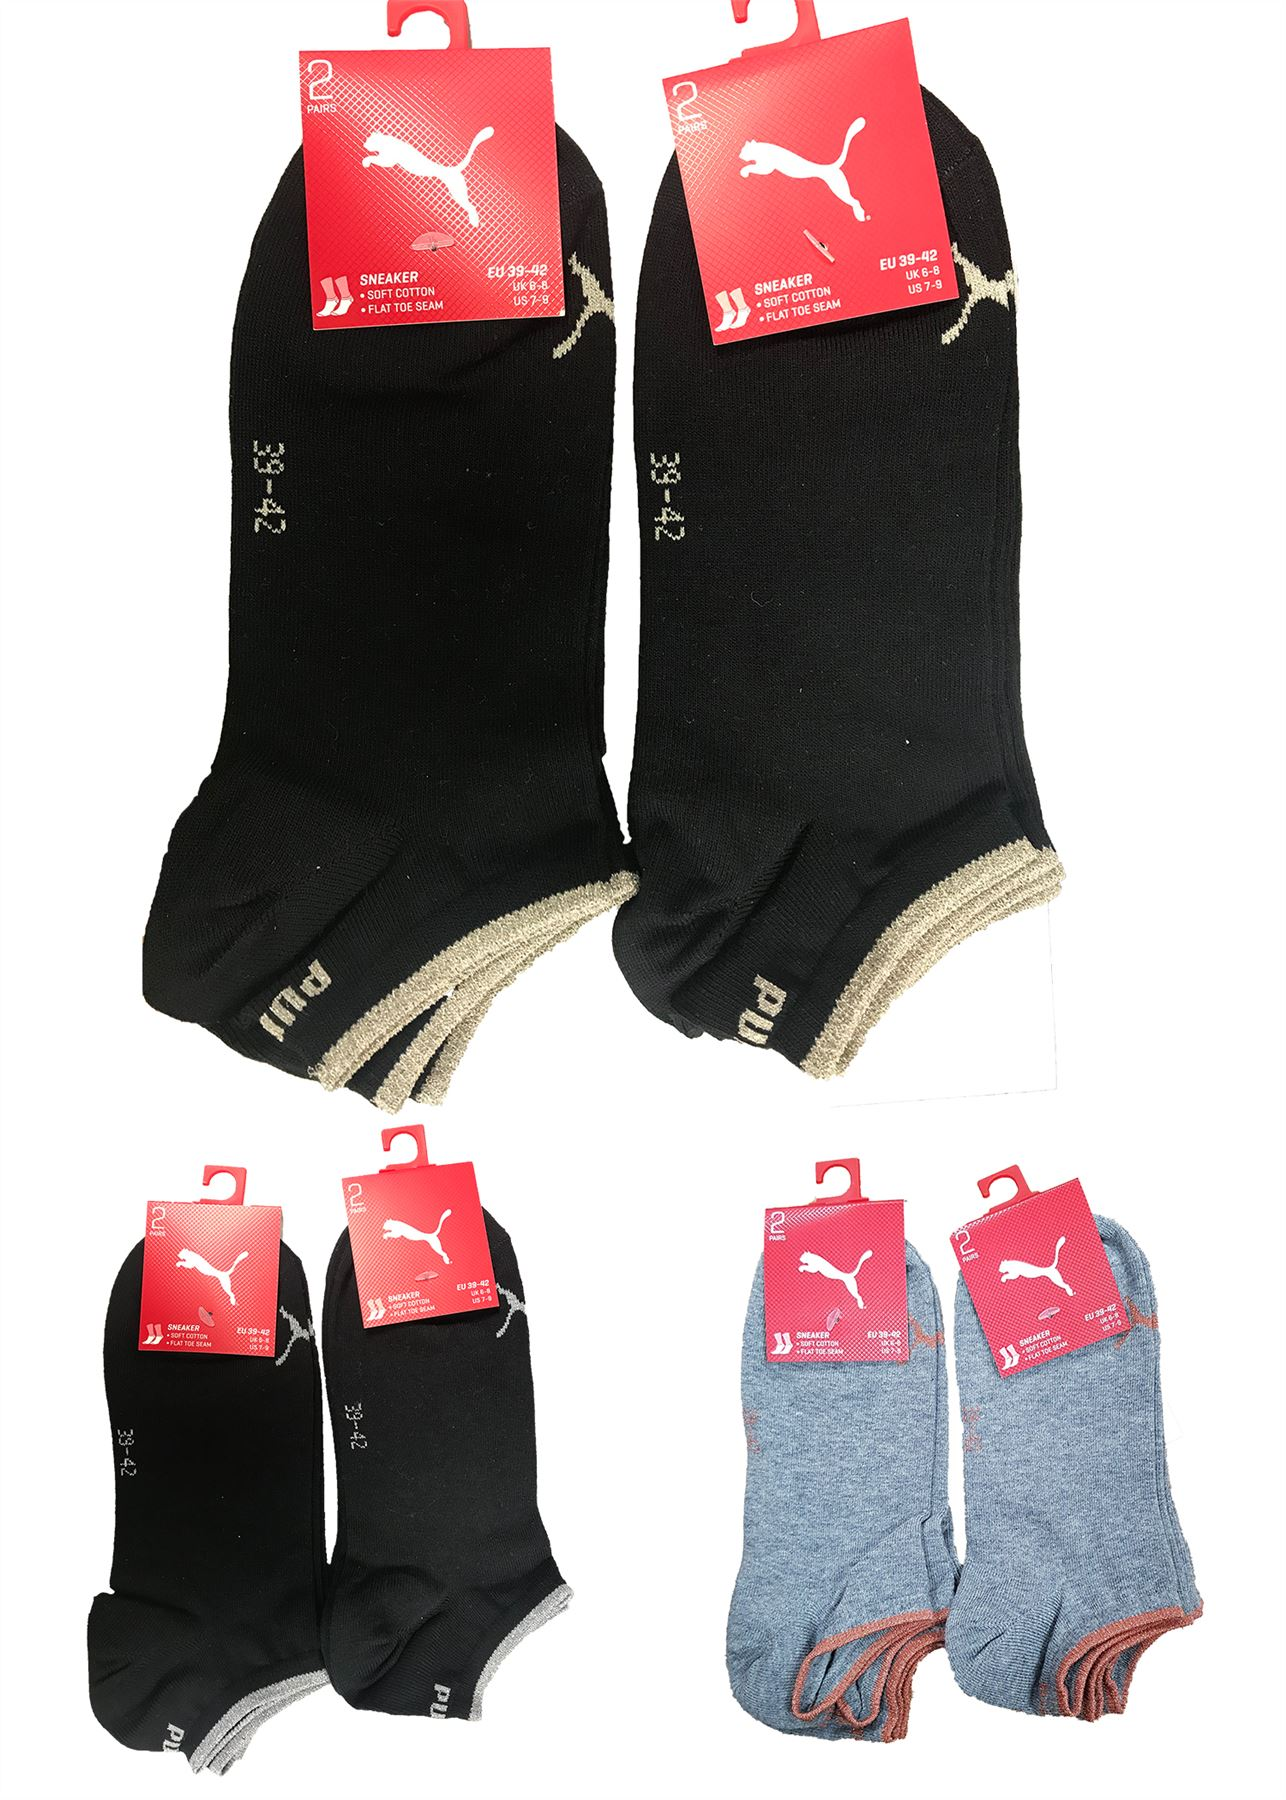 Details about 4 Pairs Puma Womens Sparkly Lurex Sneaker Trainer Sports Socks